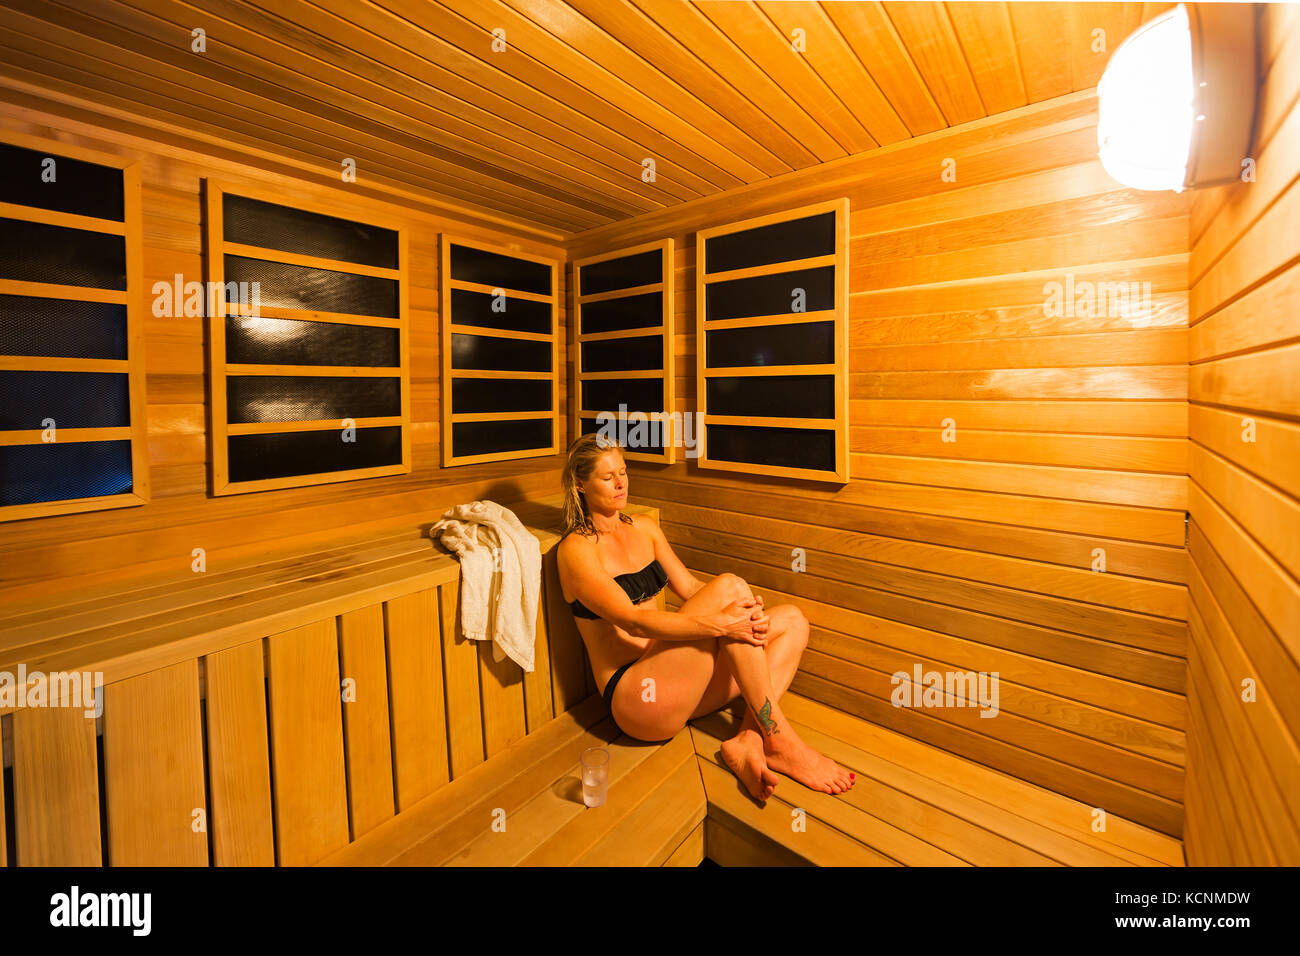 A spa visitor relaxes in a sauna at the Kingfisher Resort and Spa in Courtenay, Vancouver Island, British Columbia, - Stock Image